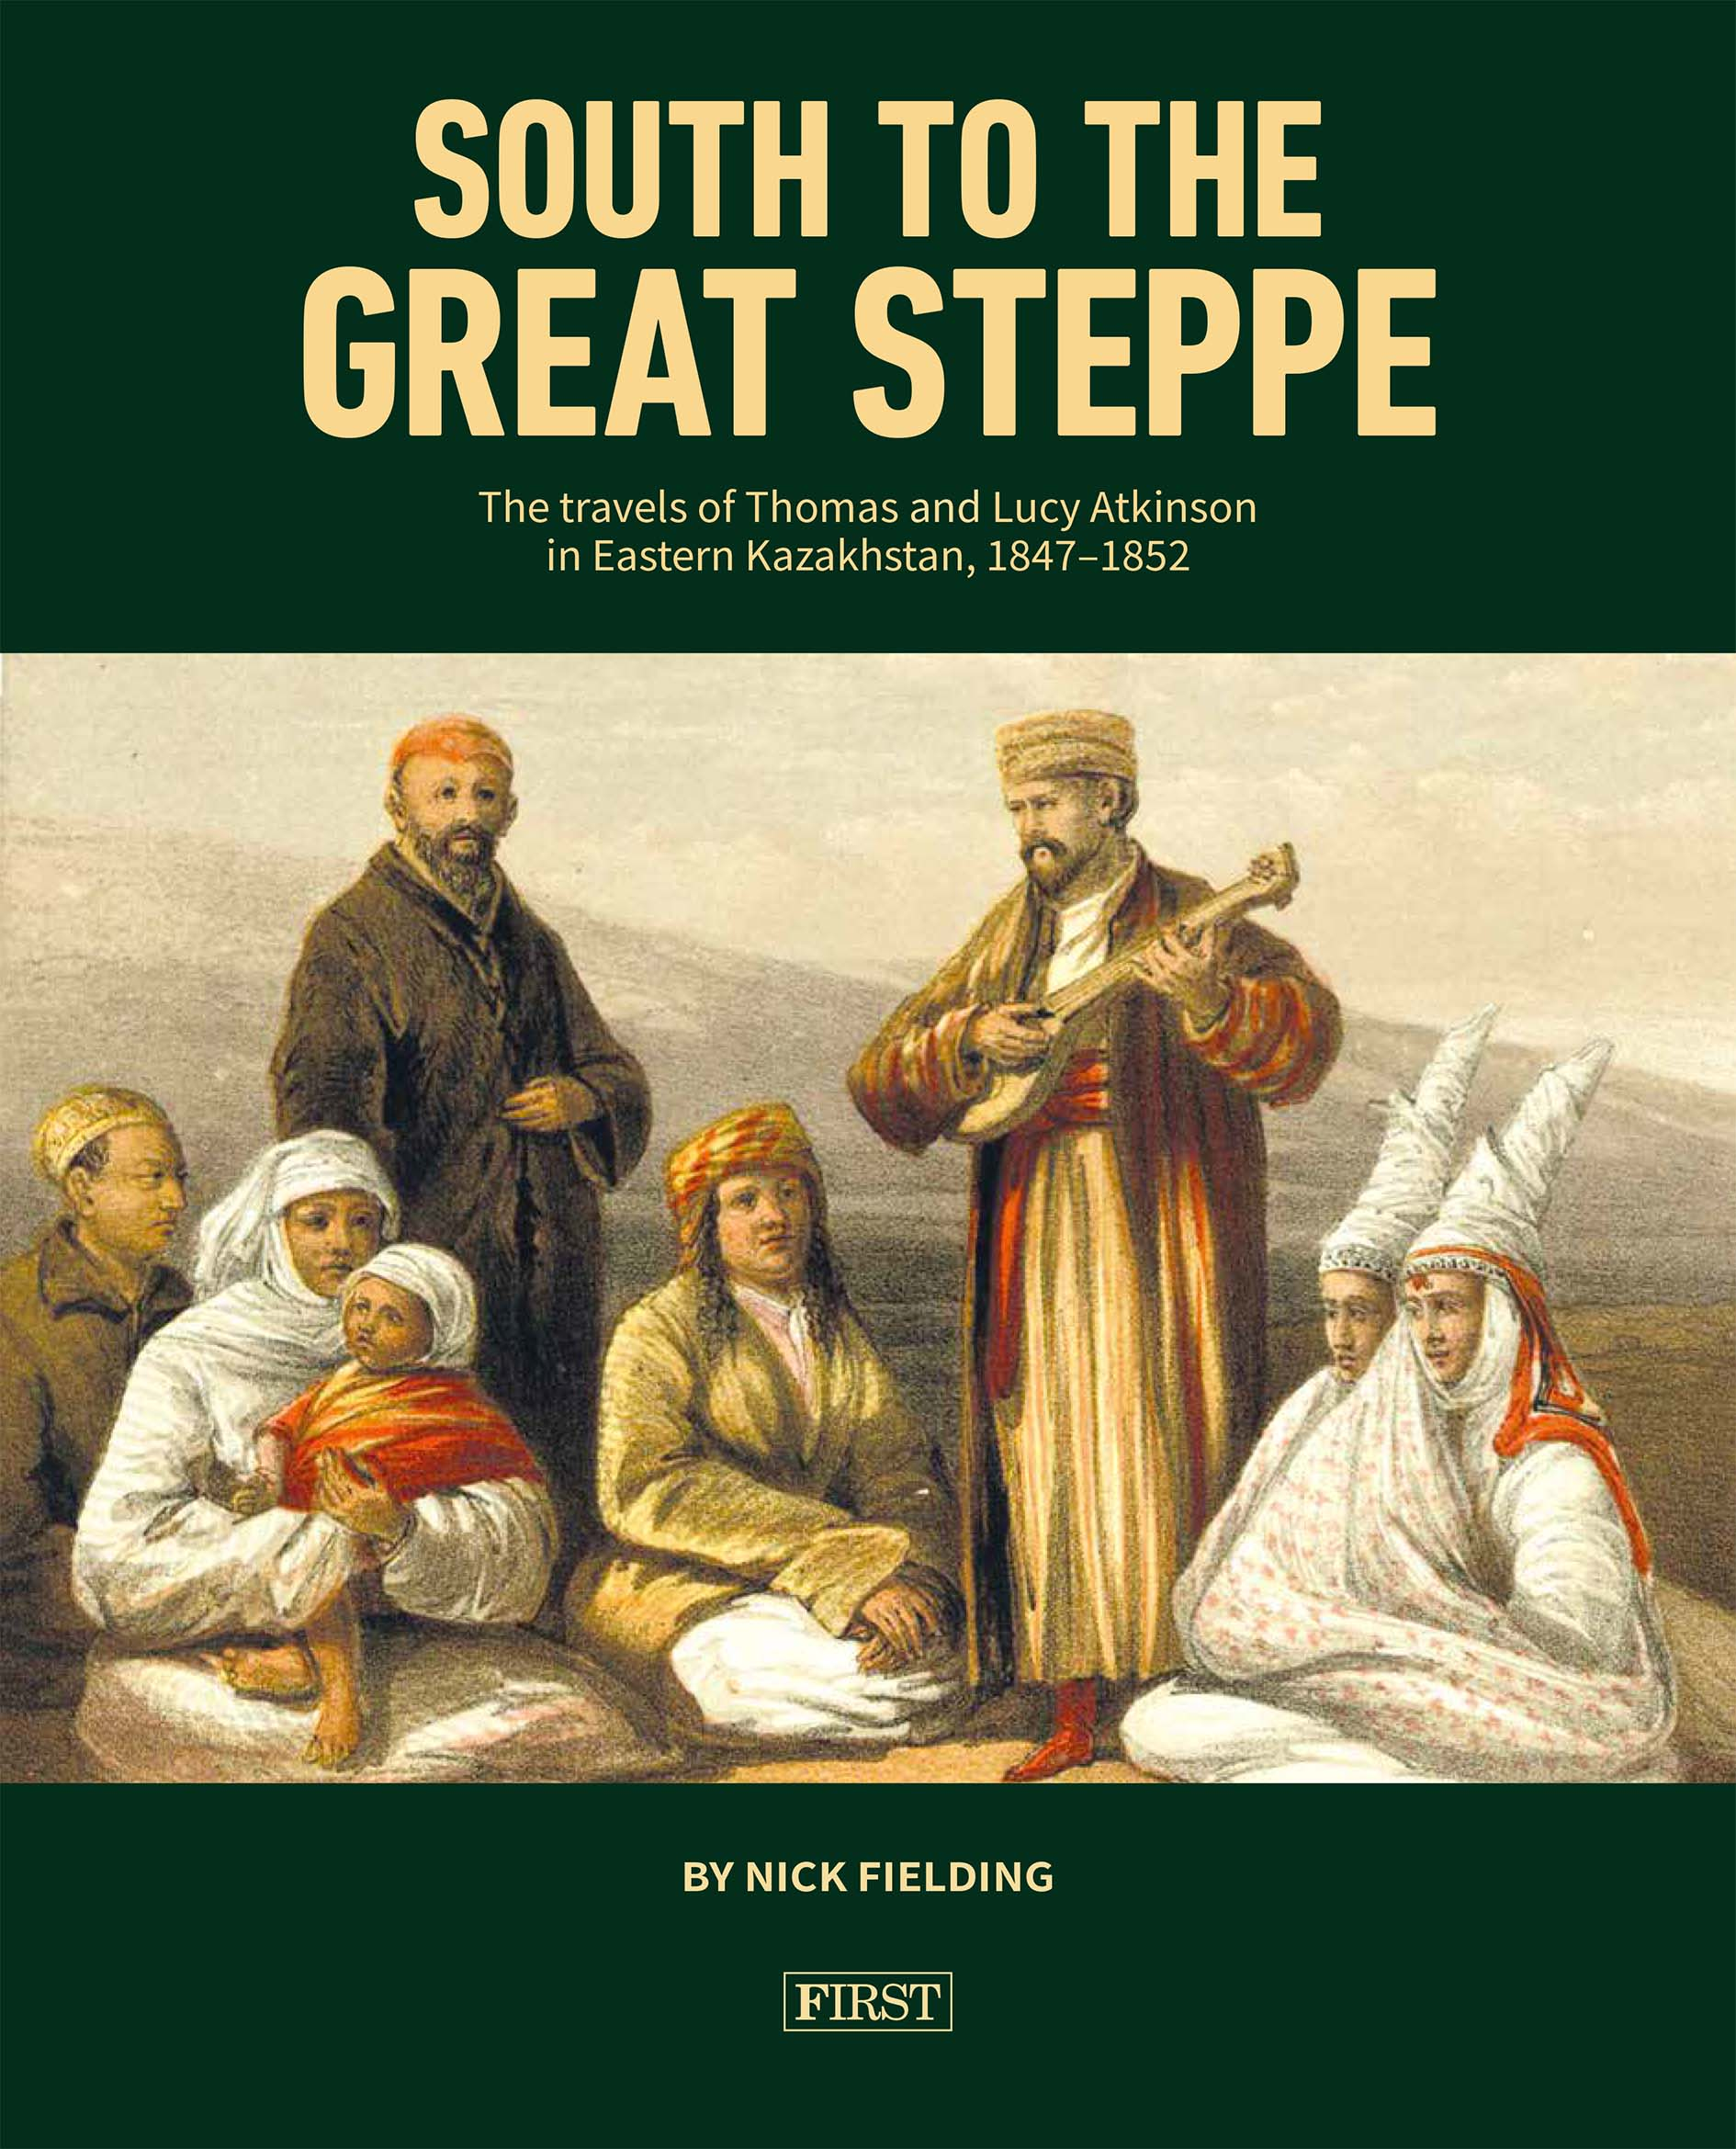 Book on 19th Century Journey to Kazakh Steppe Published in ...